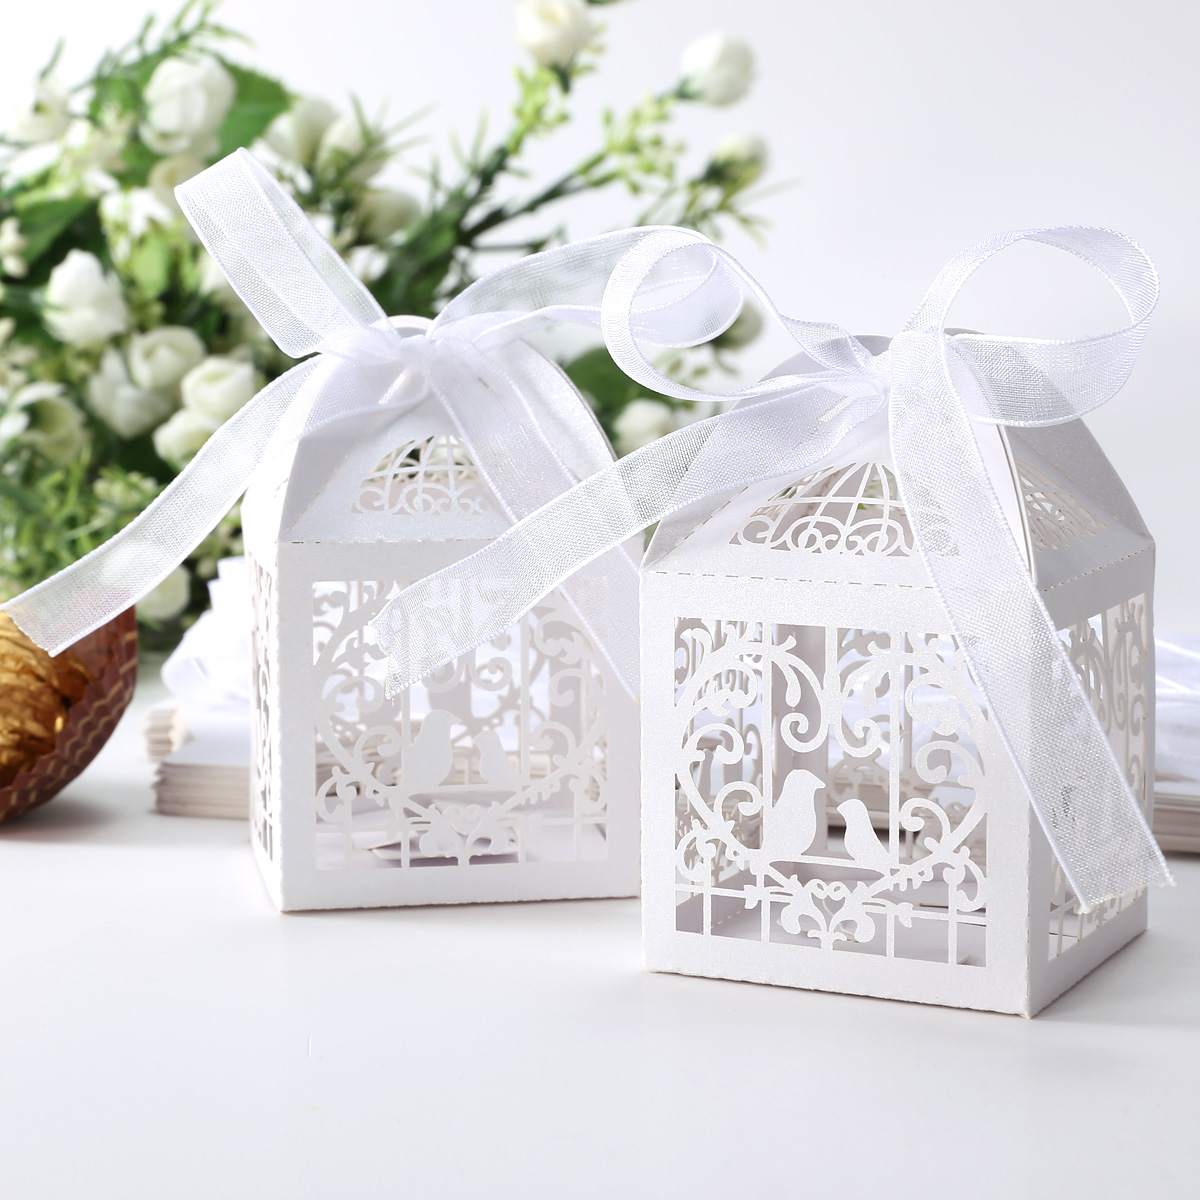 Wedding Gifts Boxes: 25PCS Wedding Laser Cut Favor Boxes Hollow Cut Love Birds